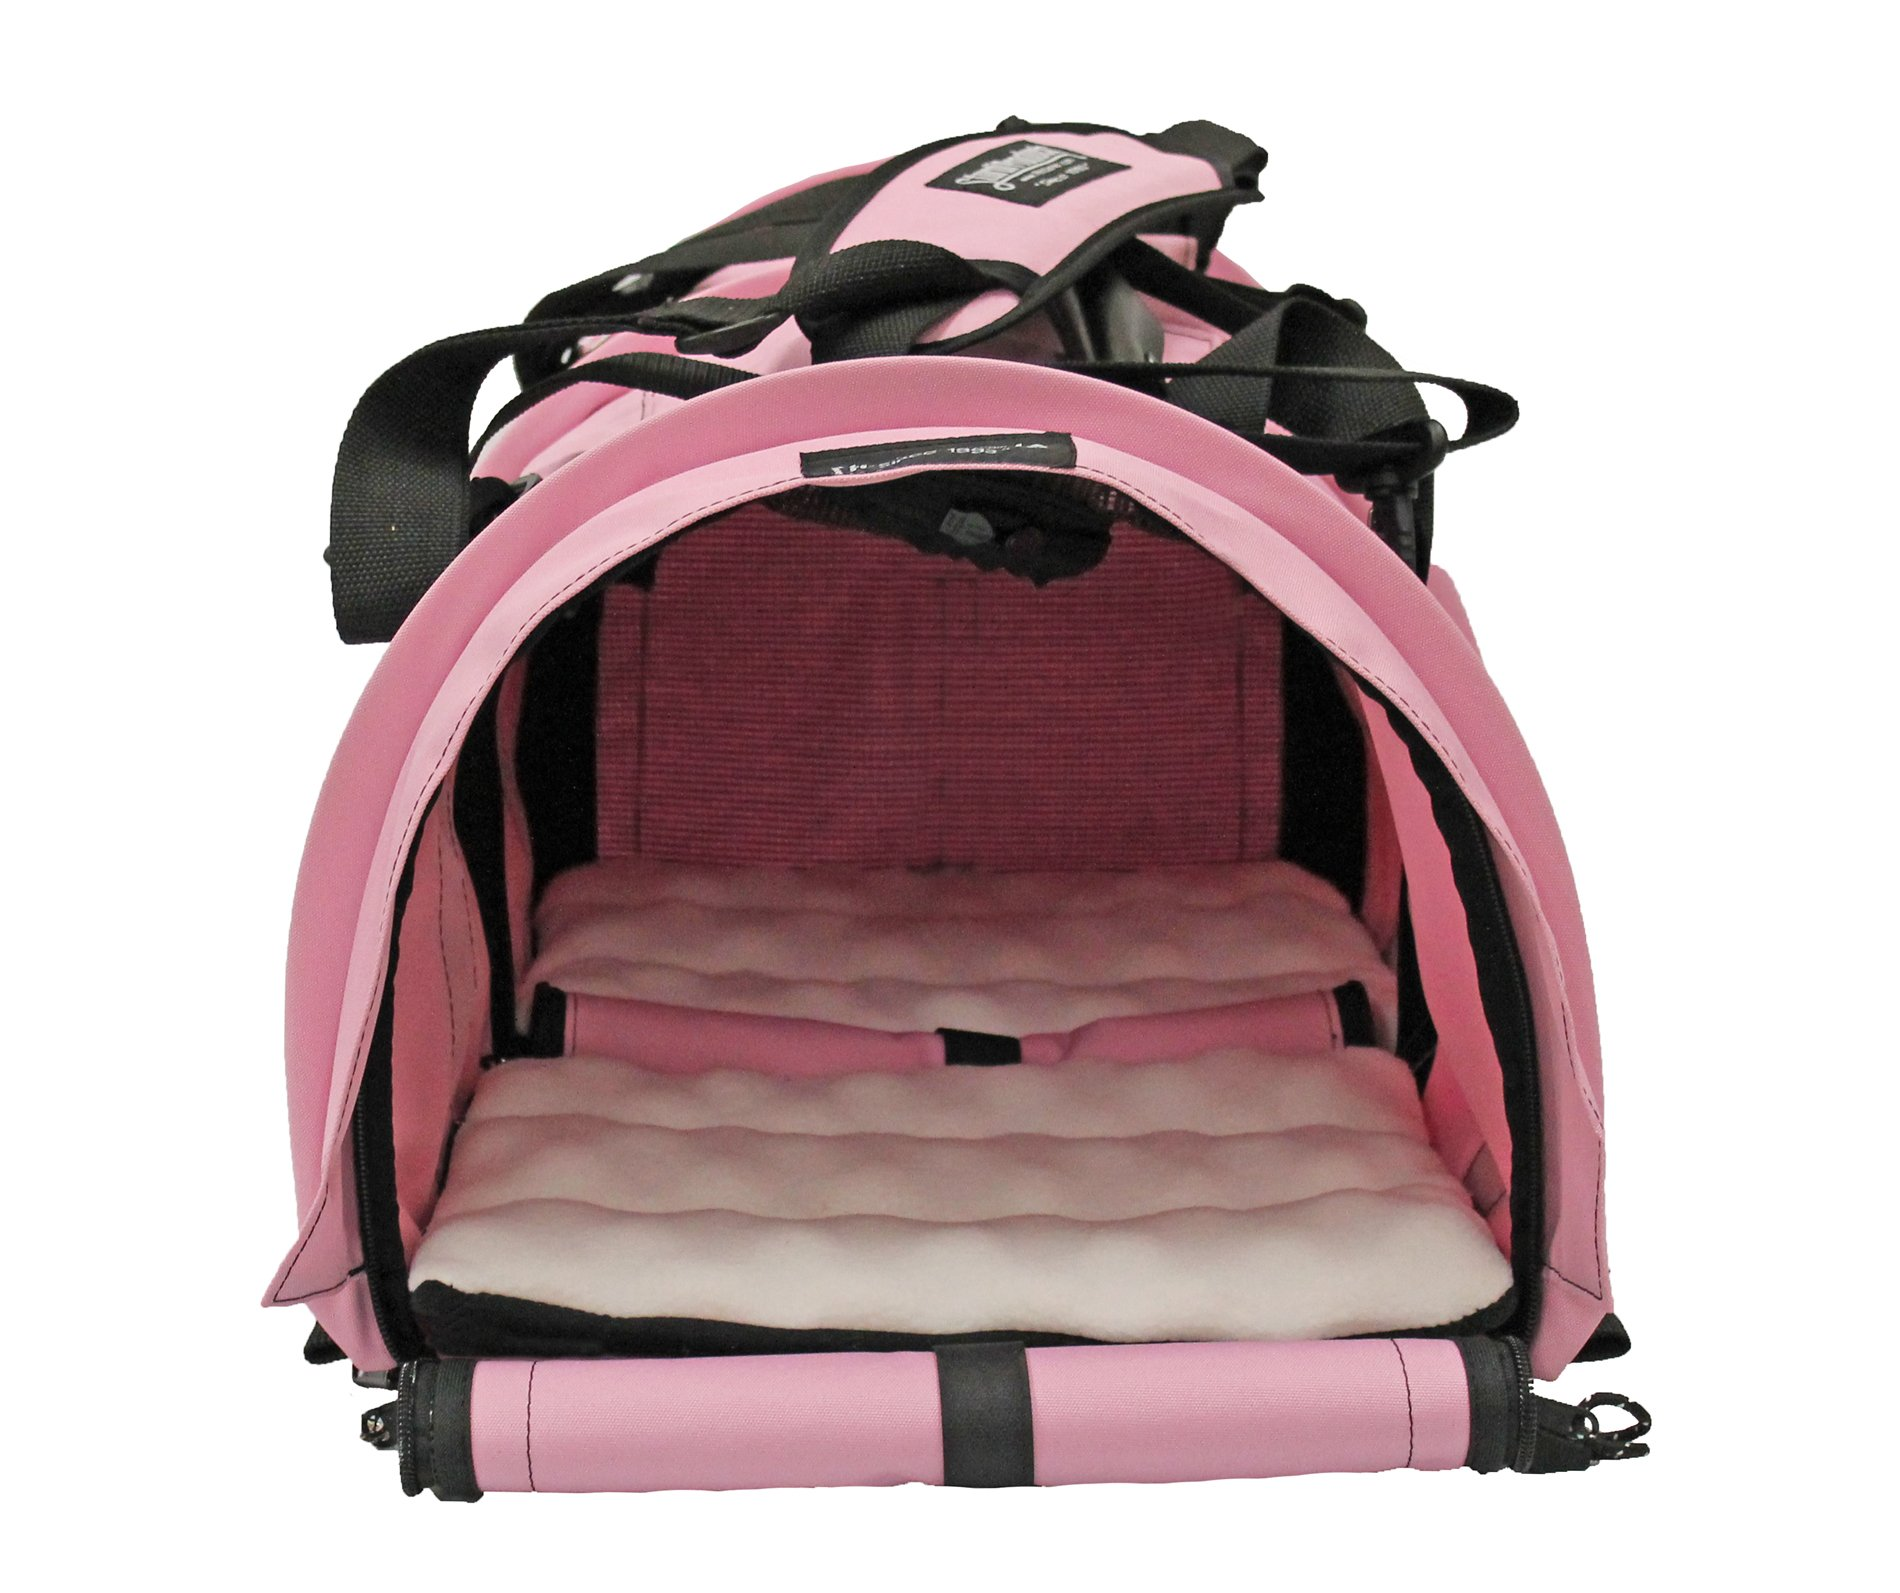 STURDI PRODUCTS StrudiBag Double Sided Divided Pet Carrier, Large, Soft Pink by STURDI PRODUCTS